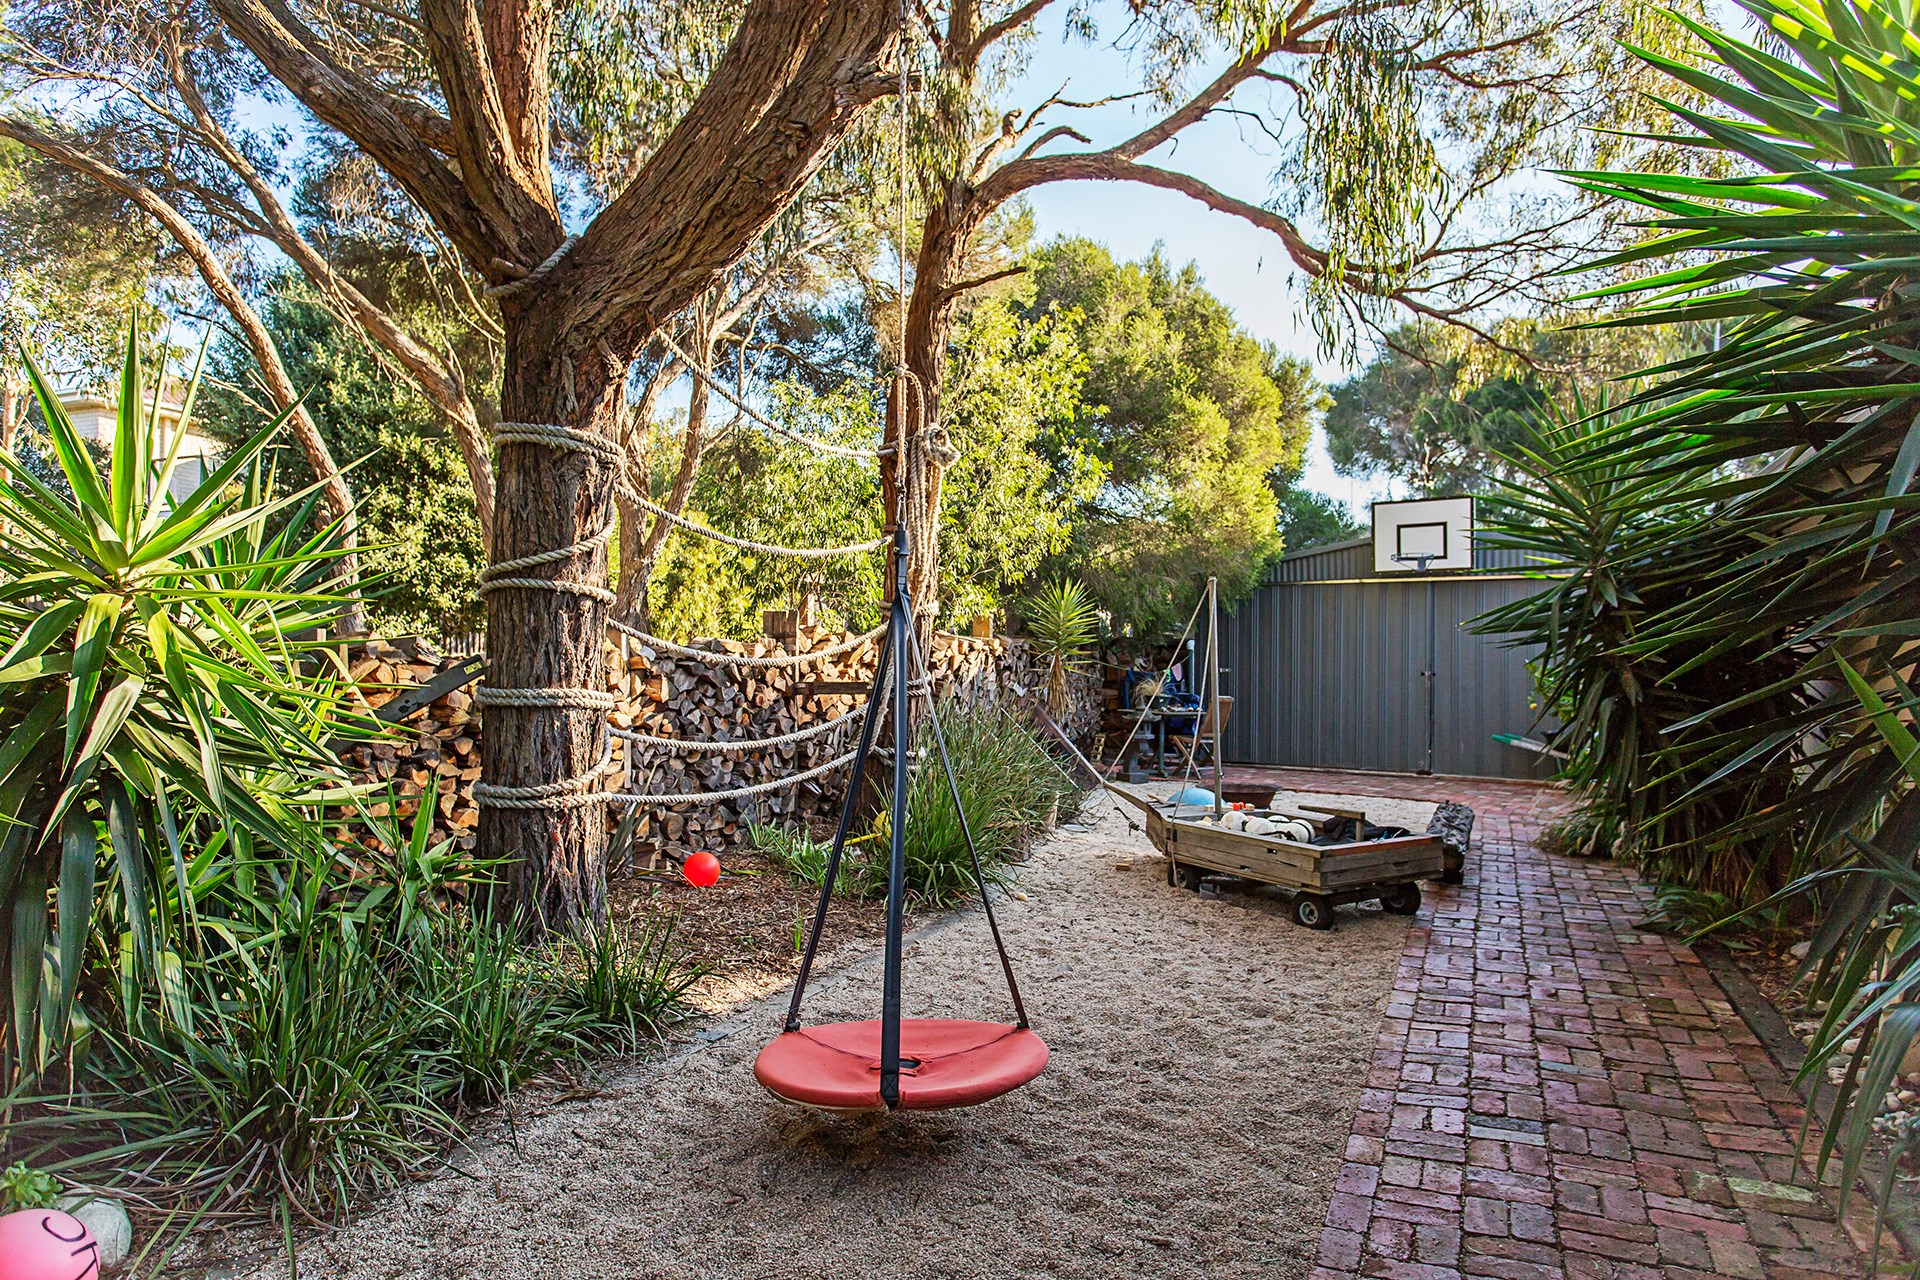 "**Lawn is not a necessity** – even if you have kids. Decking, paving, gravel and sand are all viable alternatives that will save you from mowing. [Take a tour of this kid-friendly homemade garden](http://www.homestolove.com.au/gallery-how-to-create-a-homemade-garden-2279|target=""_blank""). *Photo: Katherine Jamison*"